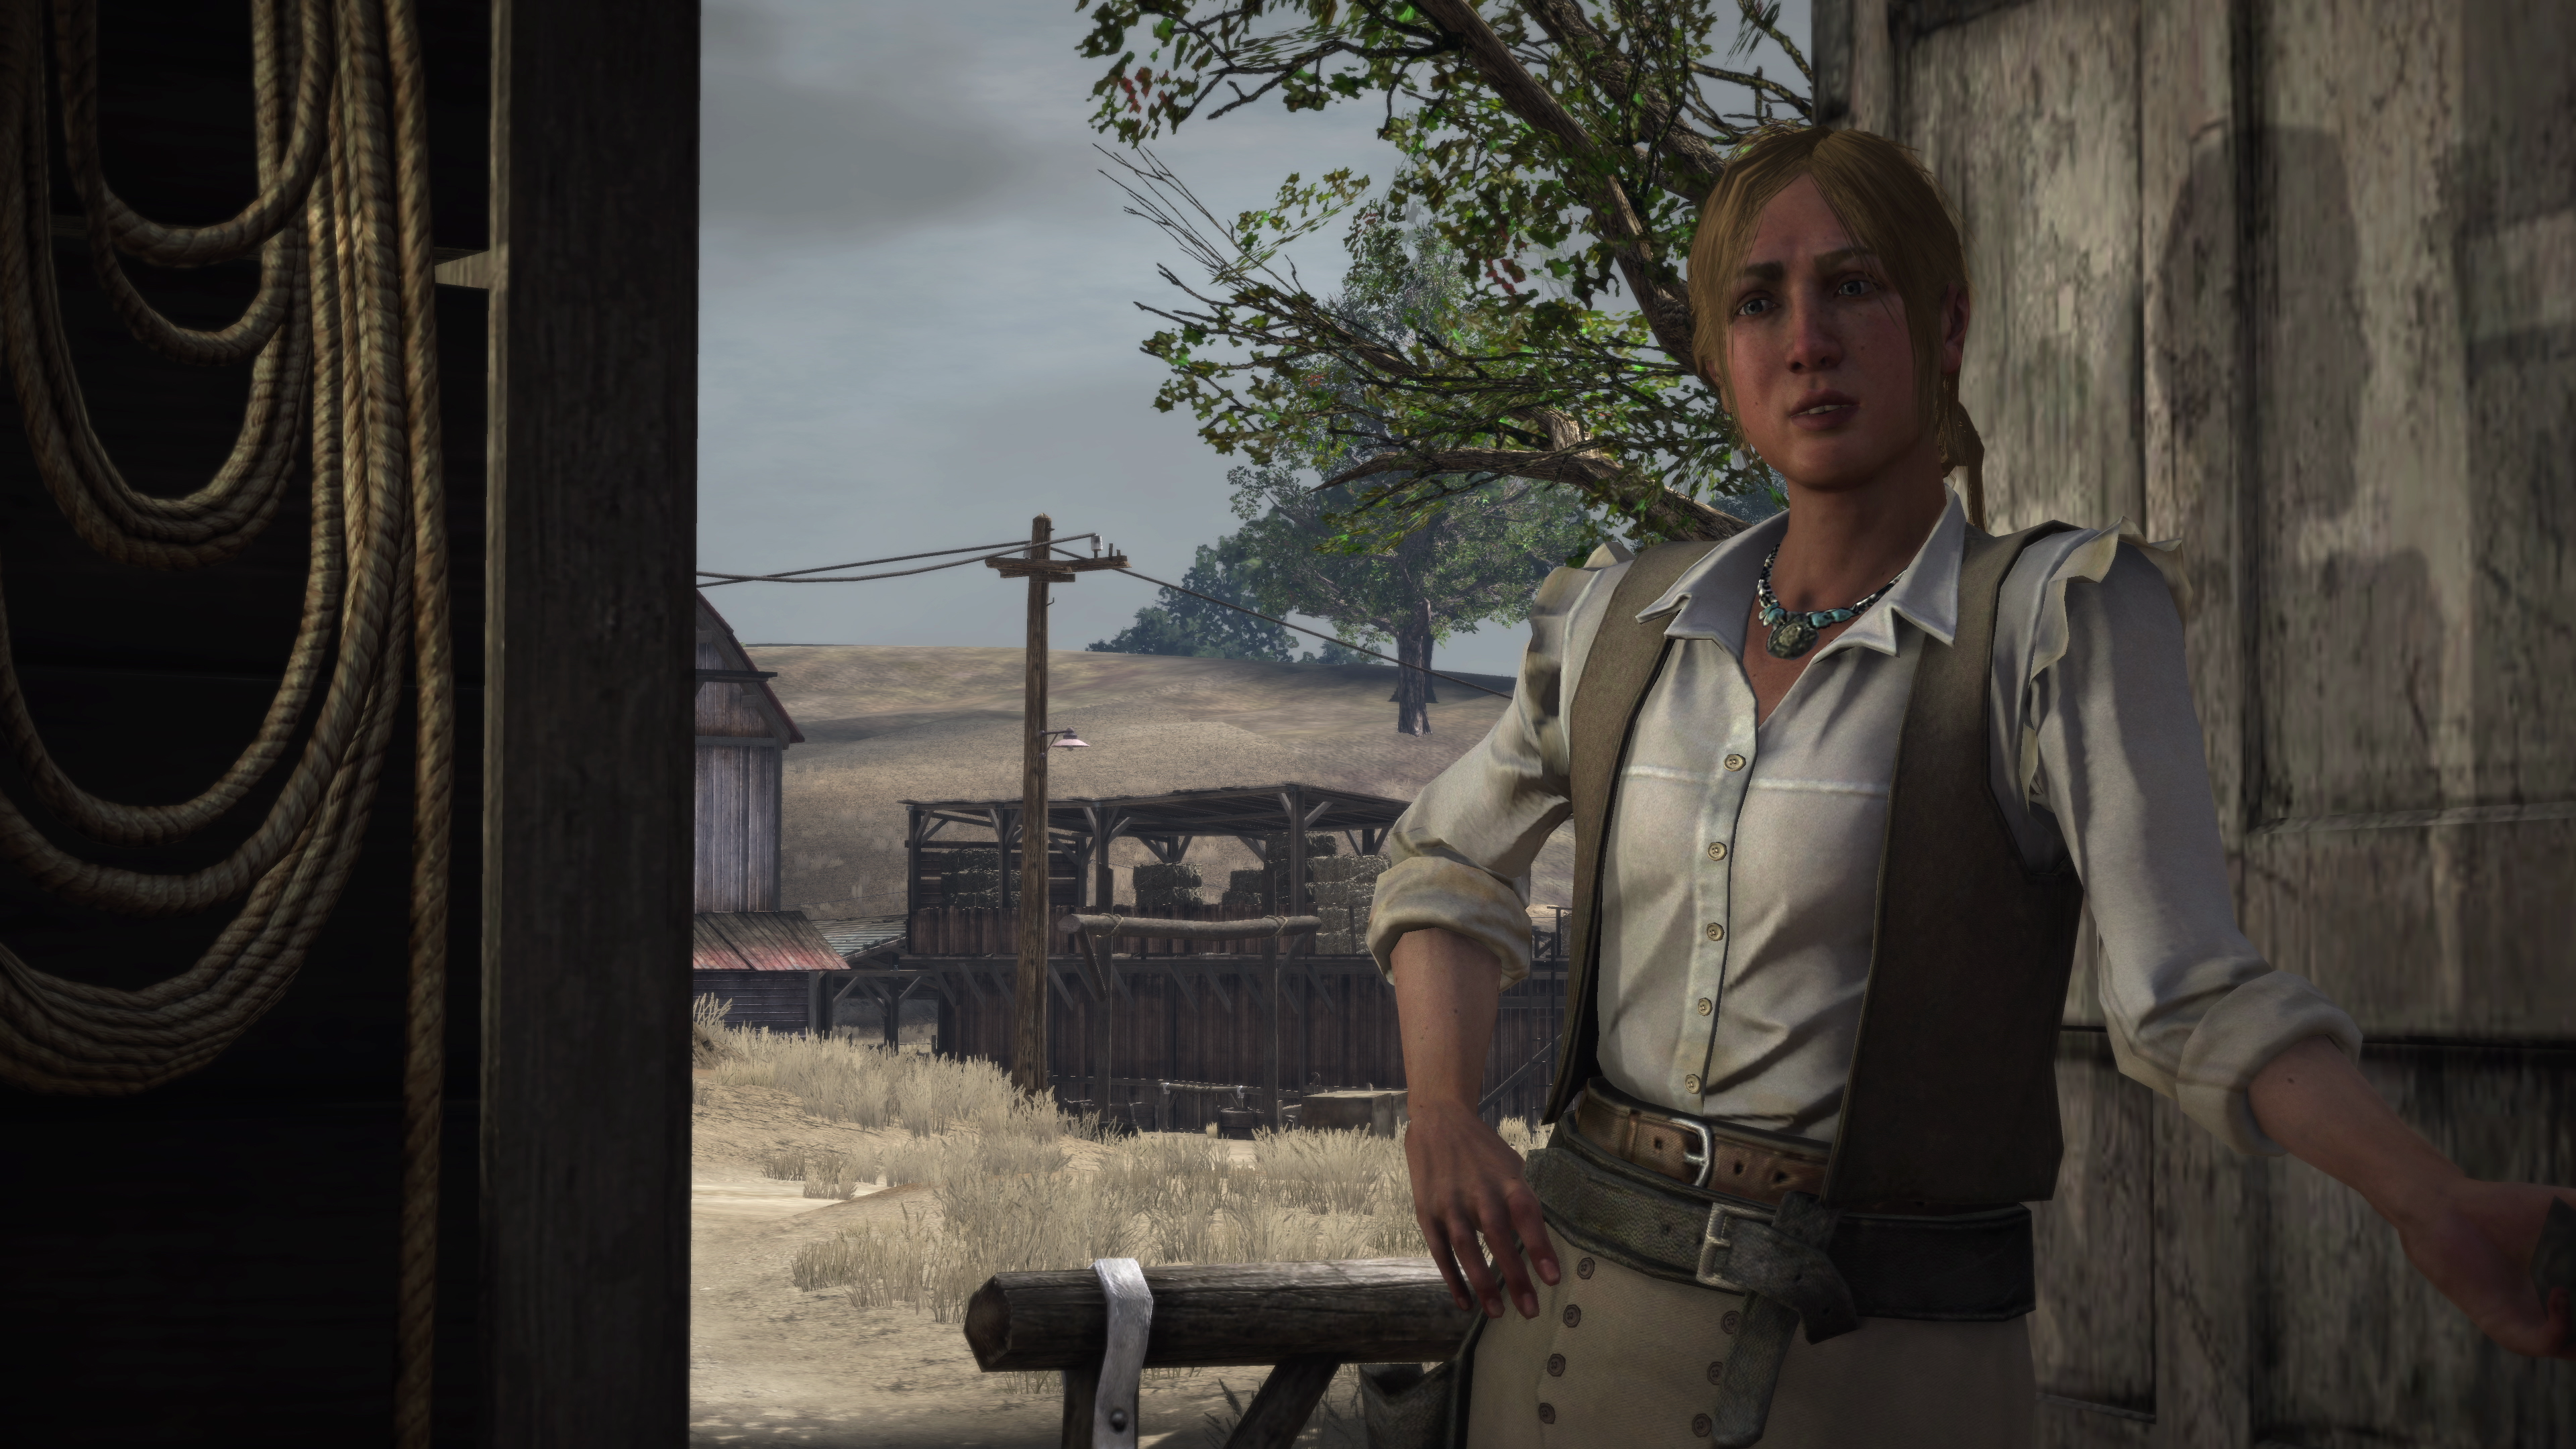 Red Dead Redemption looks insane using Xbox One's enhanced backwards